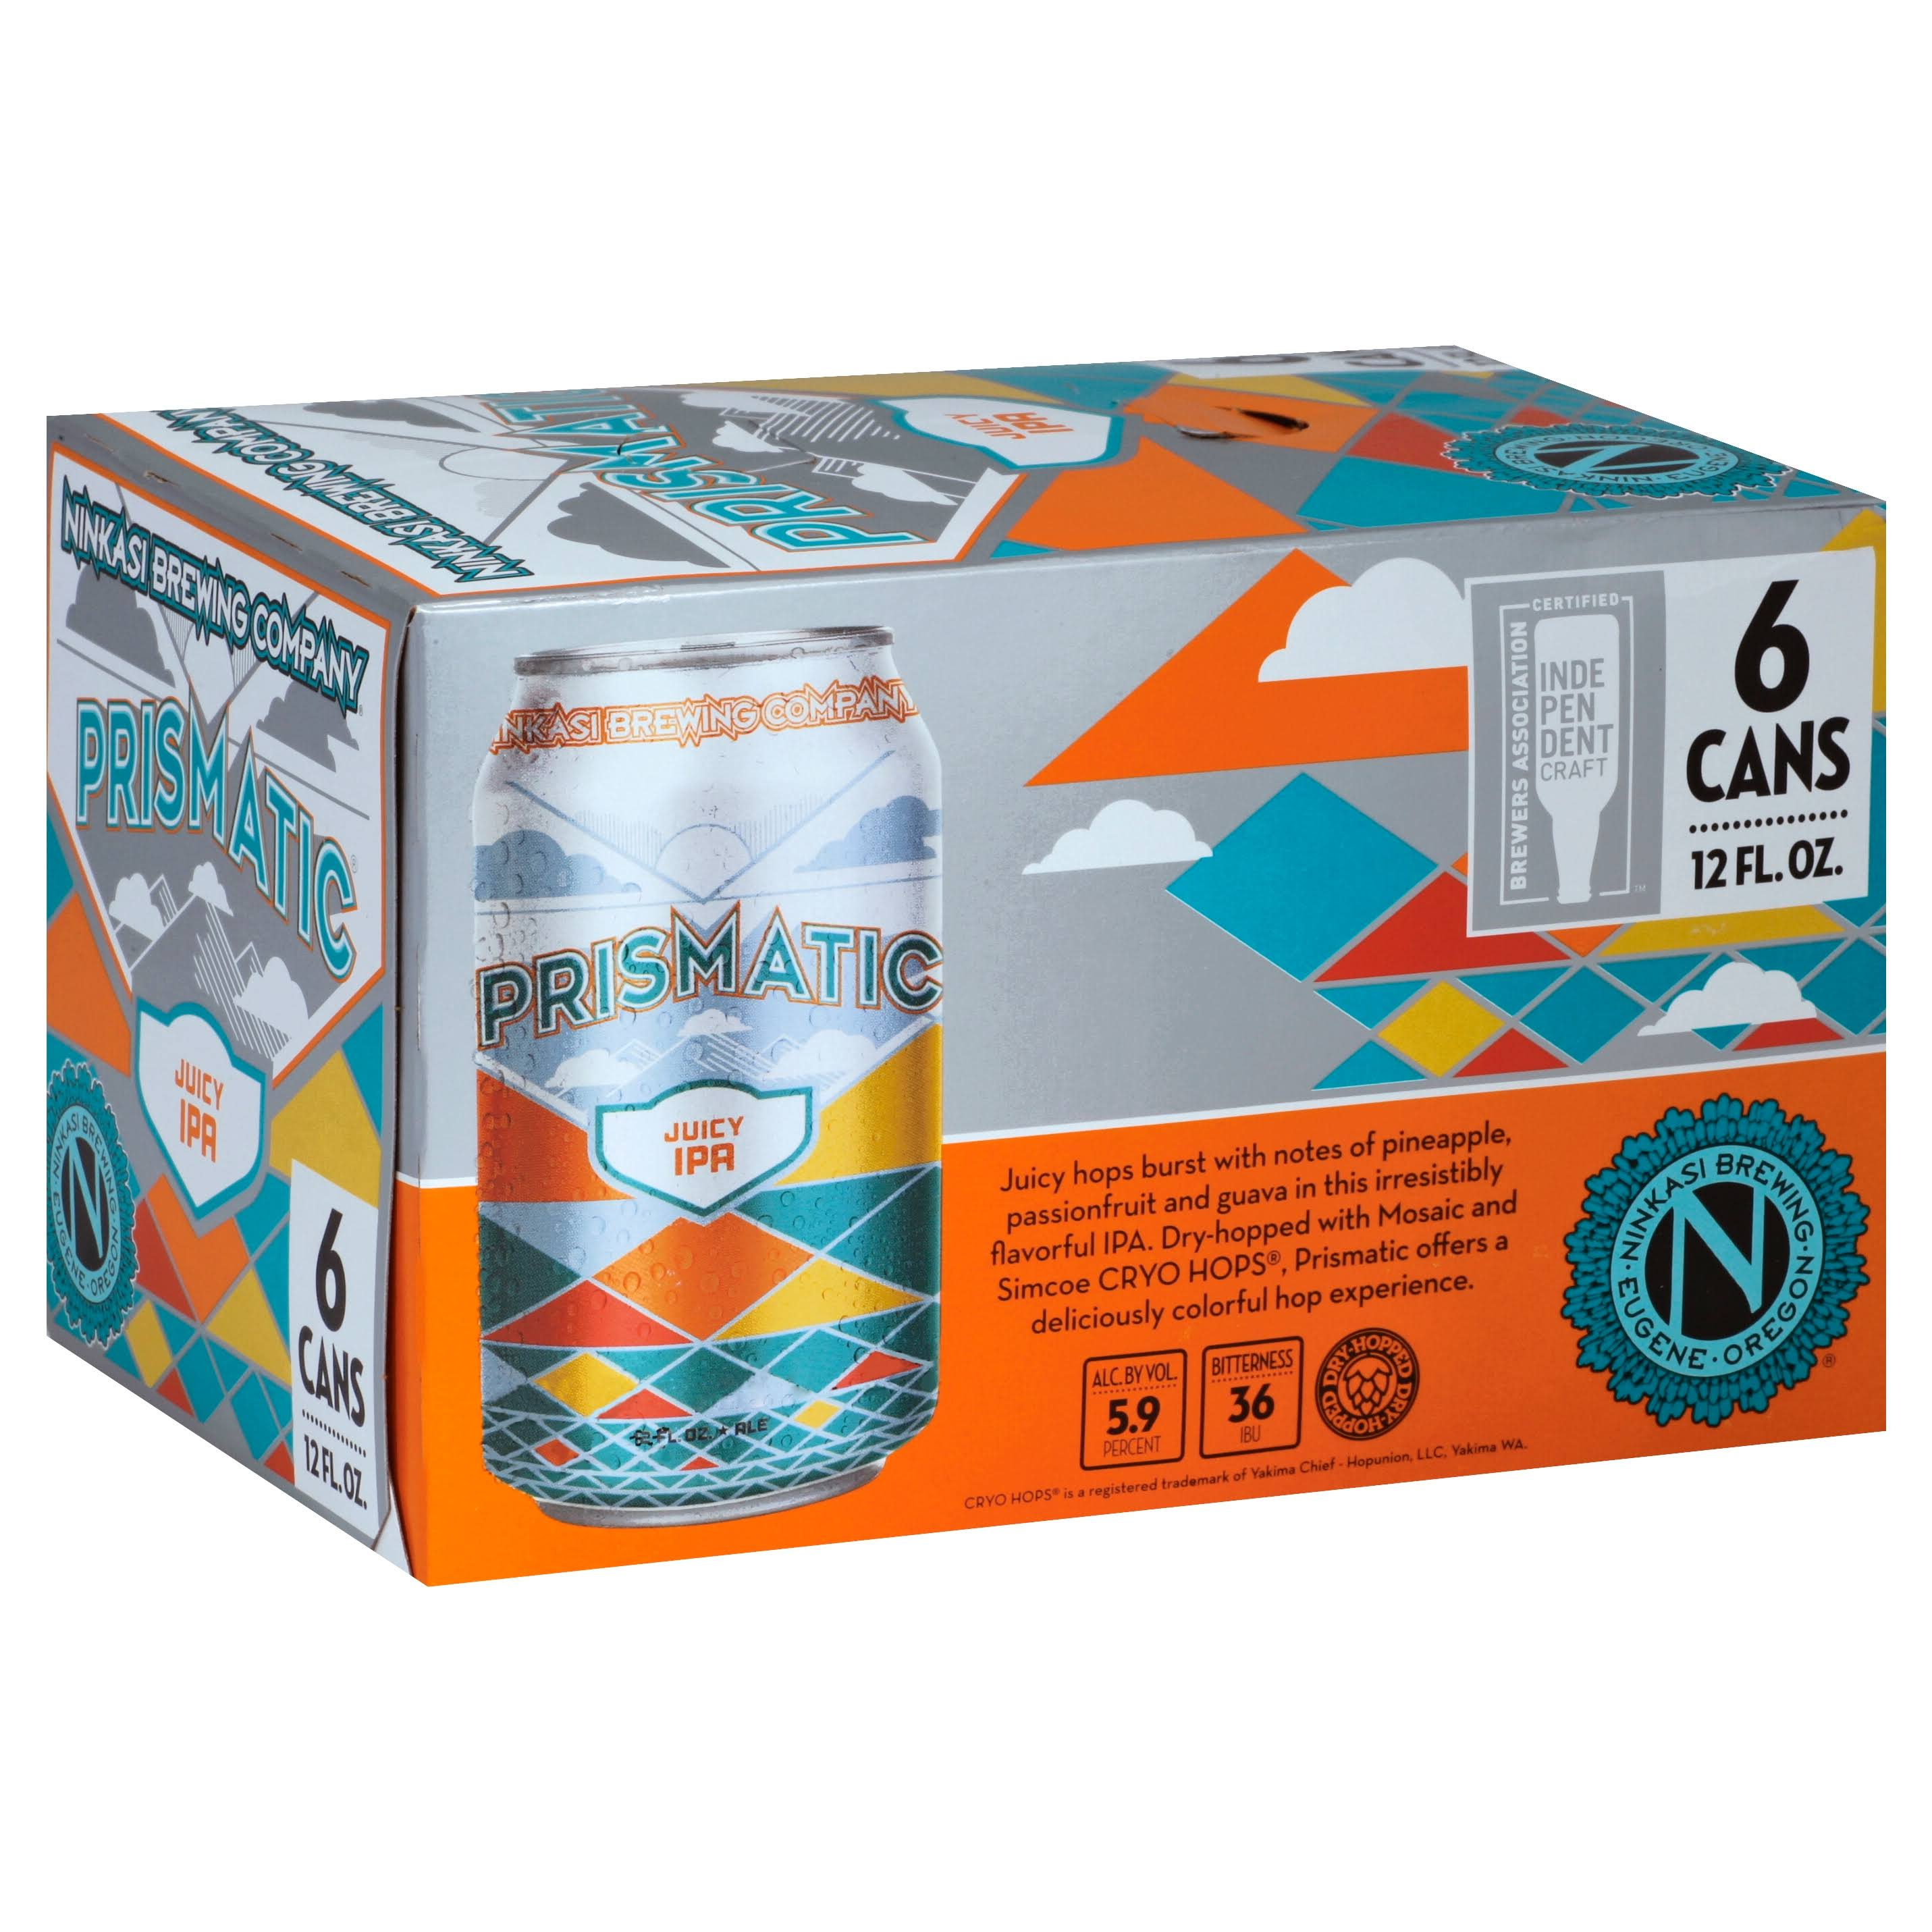 Ninkasi IPA, Juicy, Prismatic - 6 pack, 12 fl oz cans